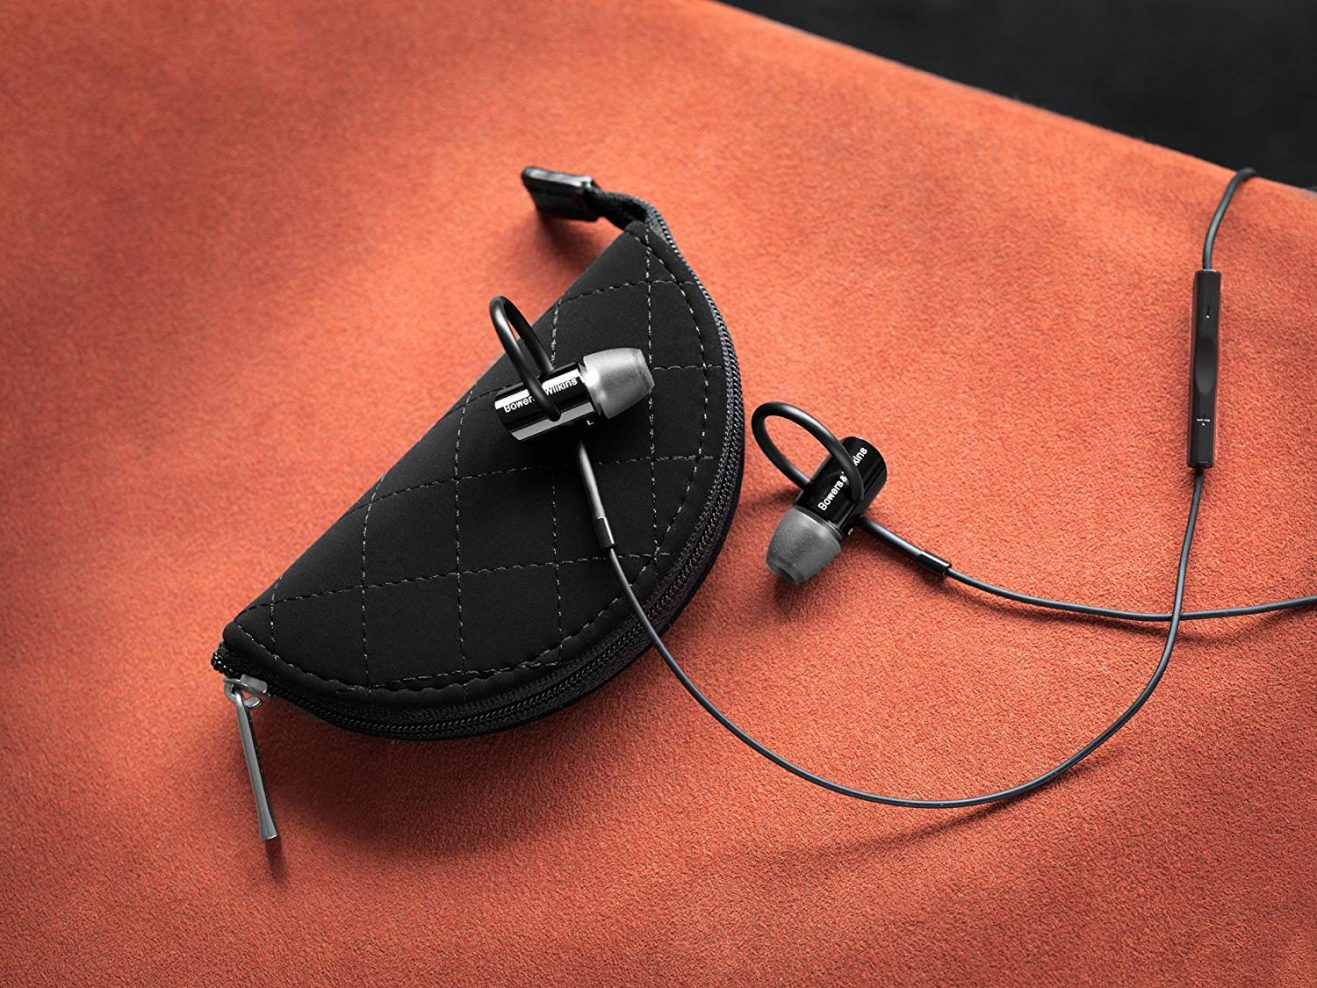 bowers & wilkins cuffie in ear